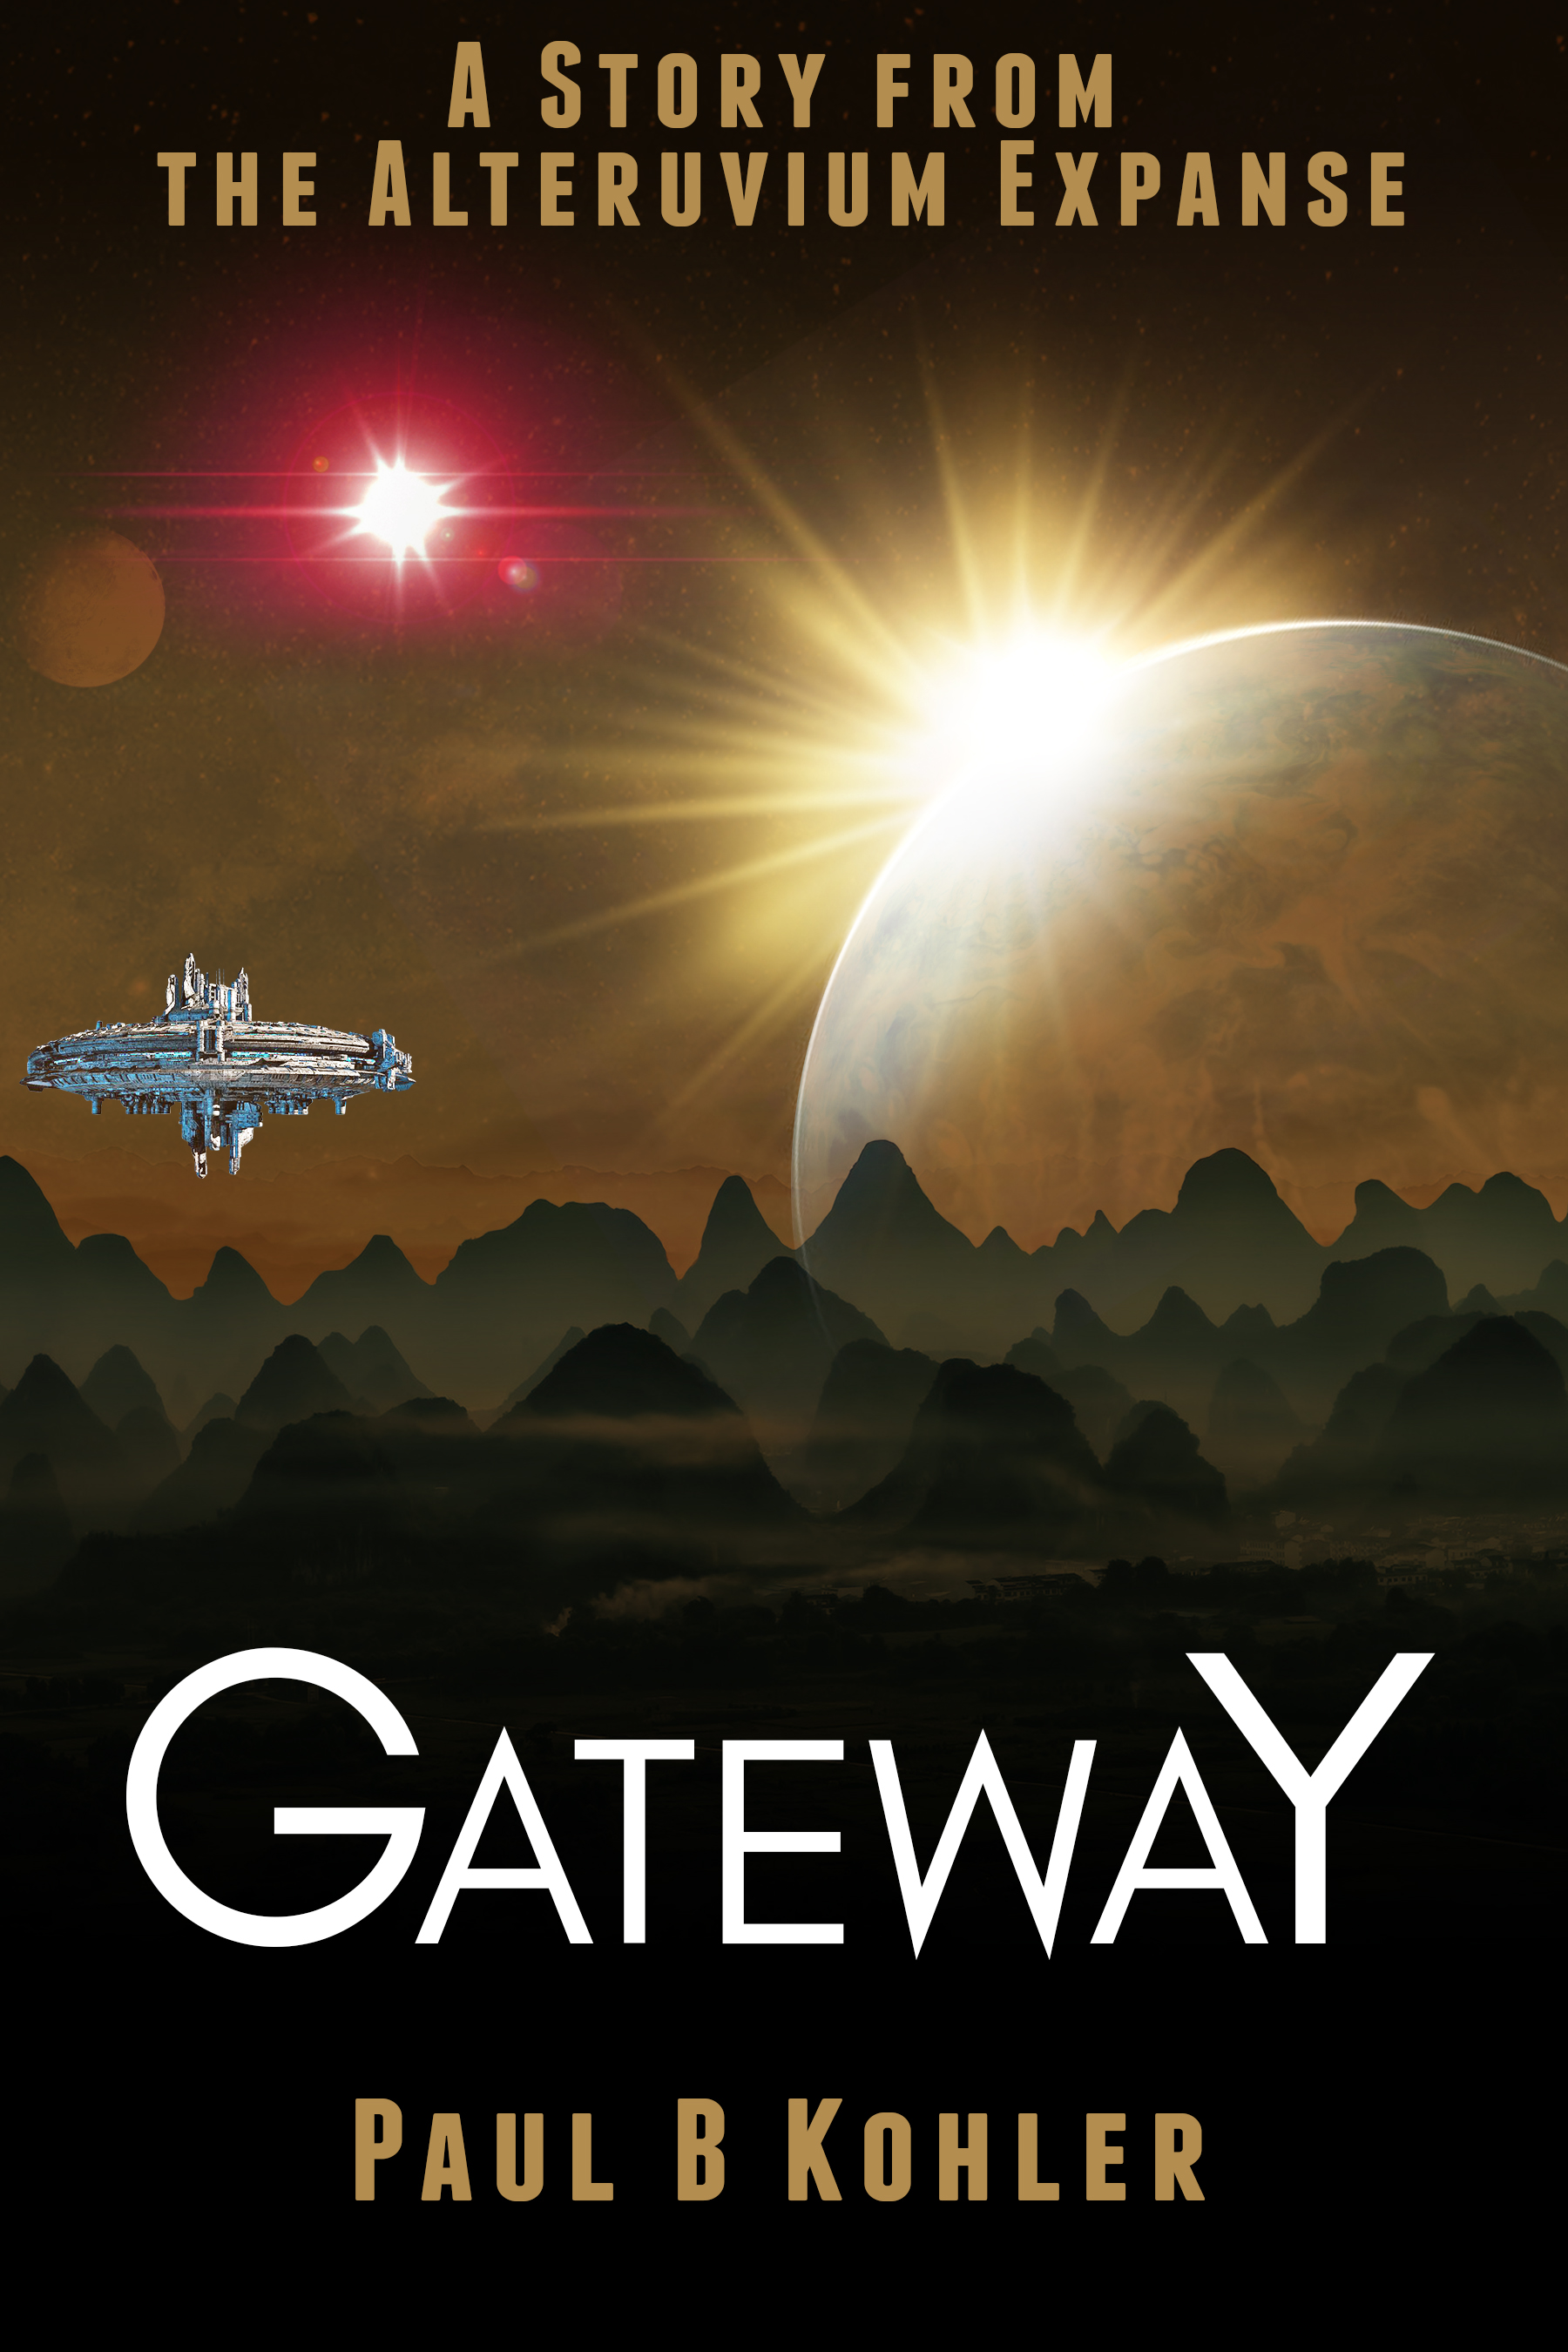 alteruvium expanse, gateway, sci-fi, short story, paul b kohler